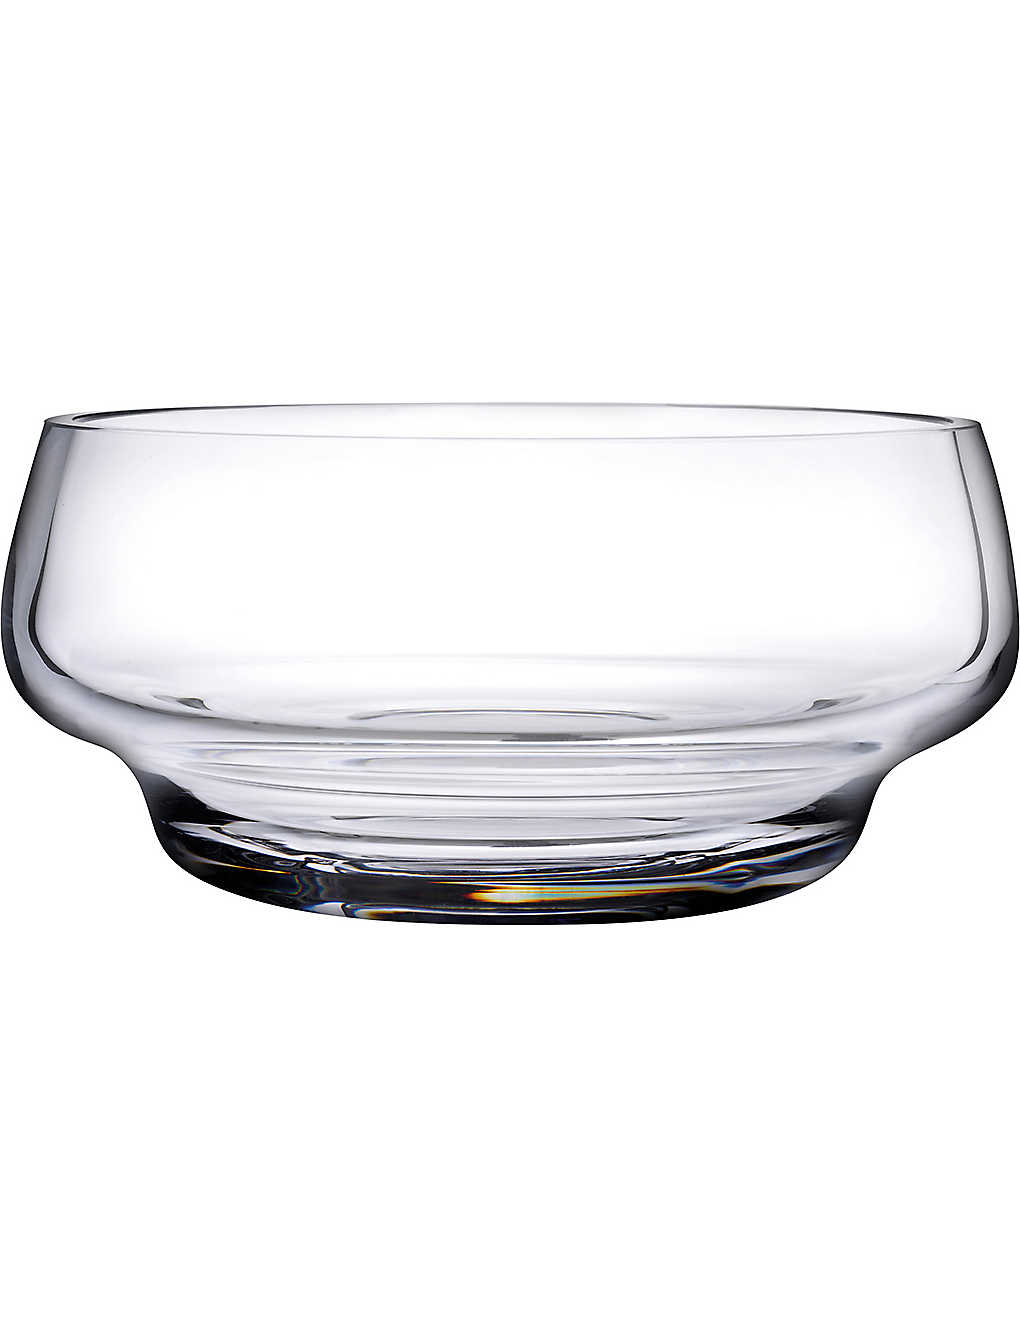 NUDE - Nigel coates glass bowl | Selfridges.com